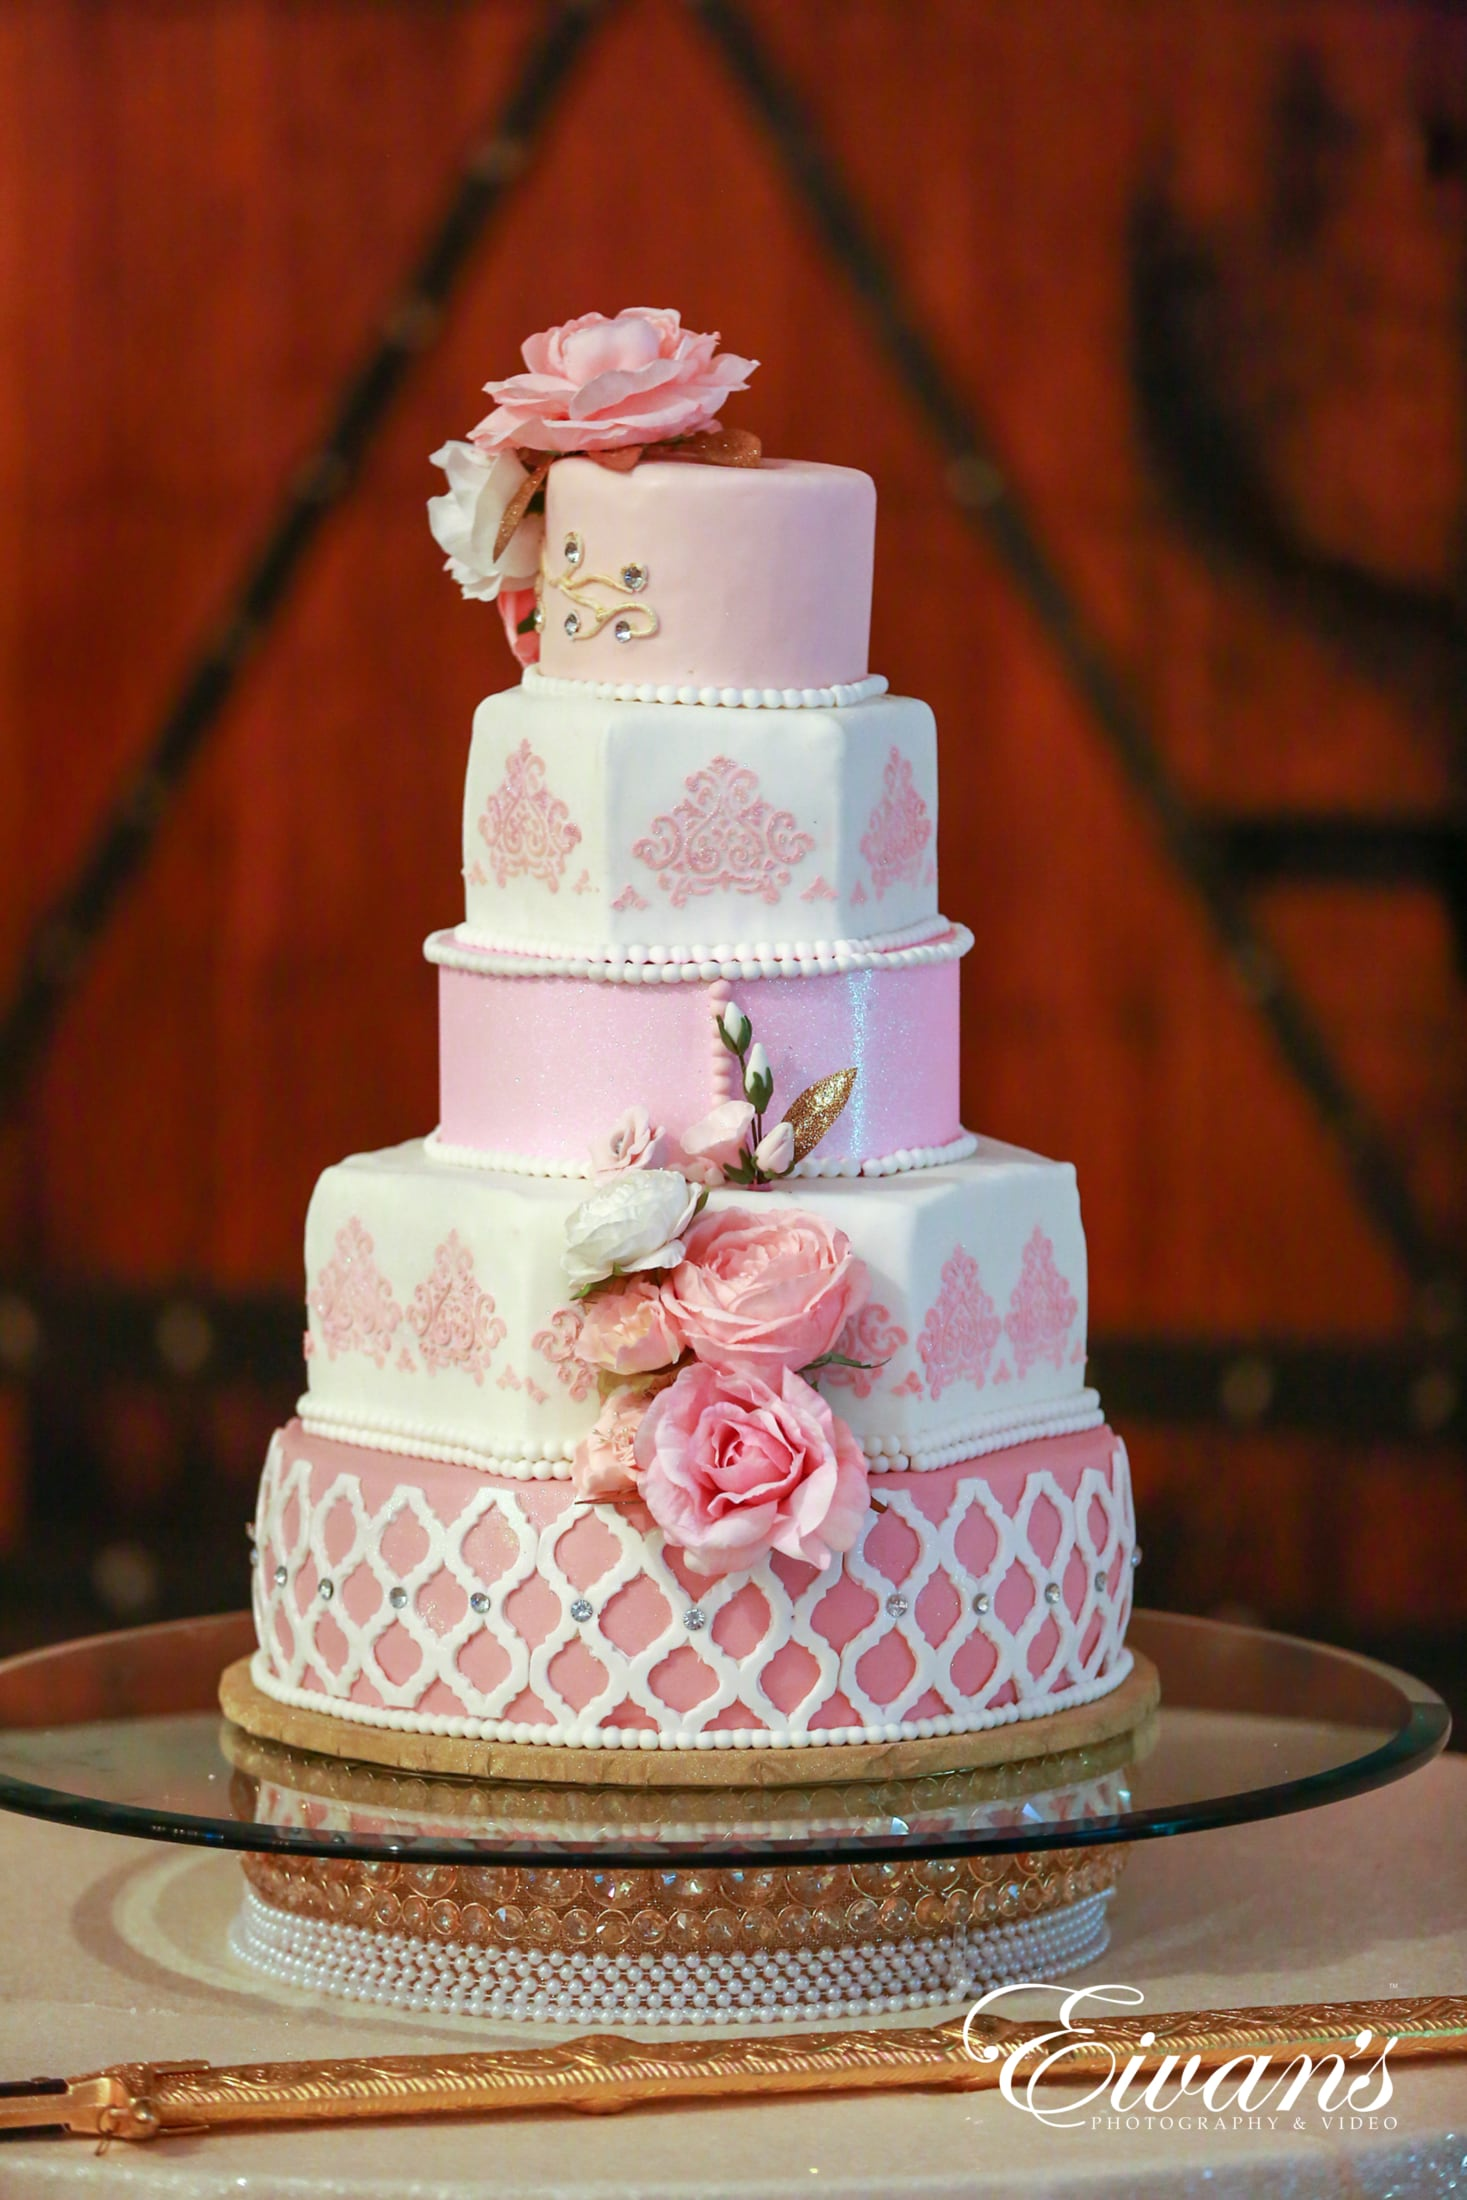 image of a five teared cake of pink and white